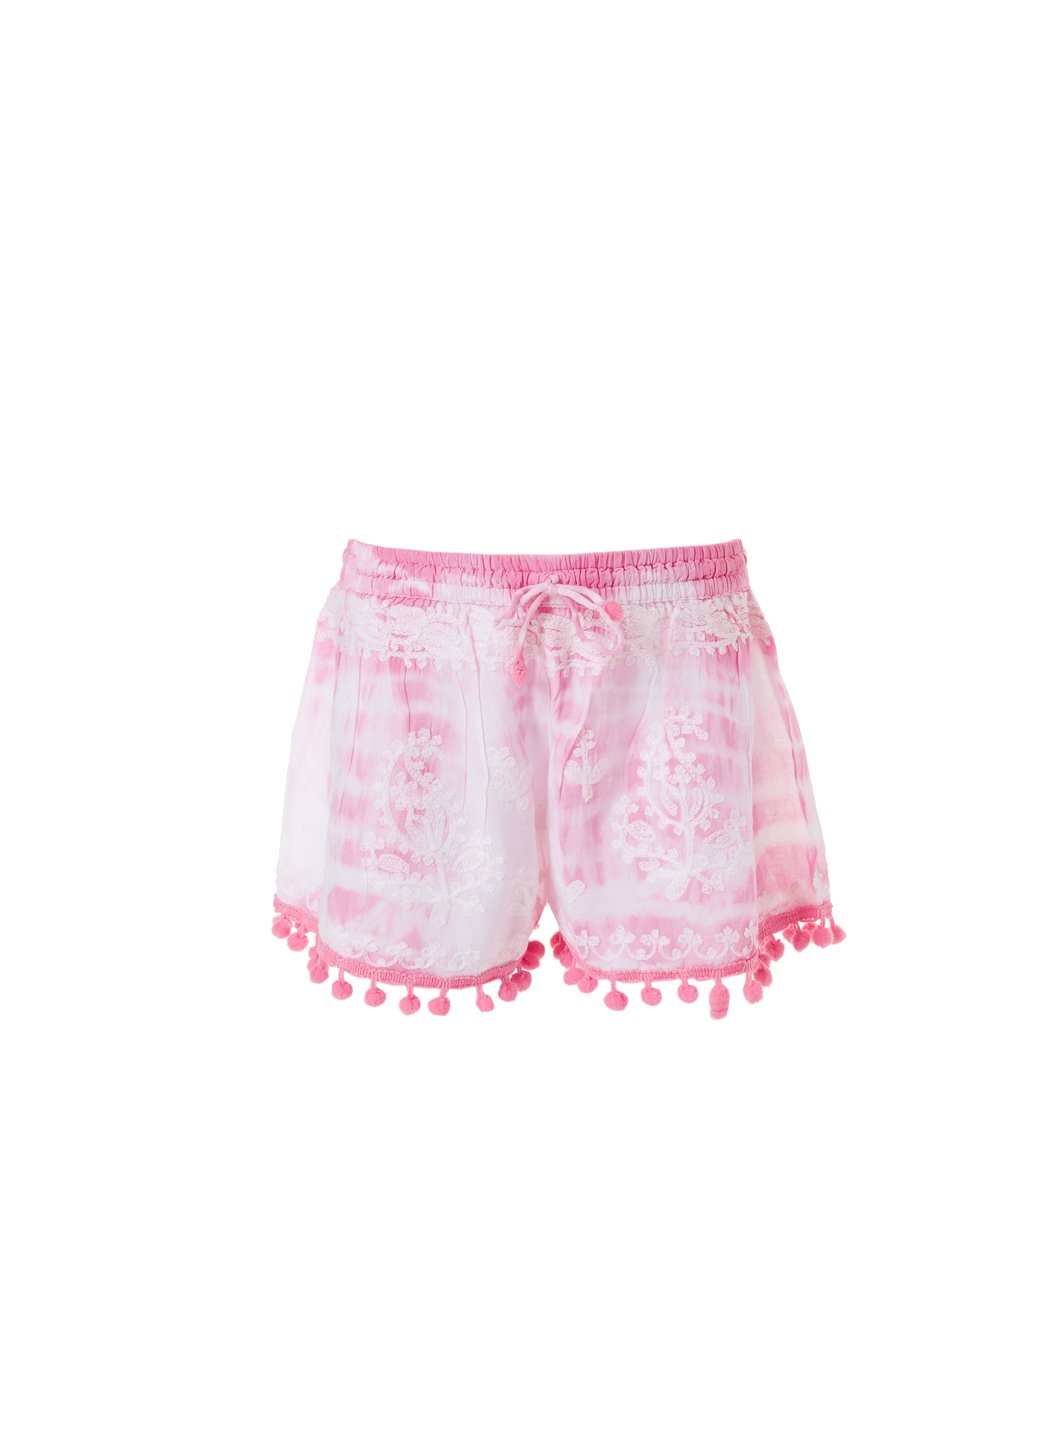 baby shorts pale pink tie dye neon 2019